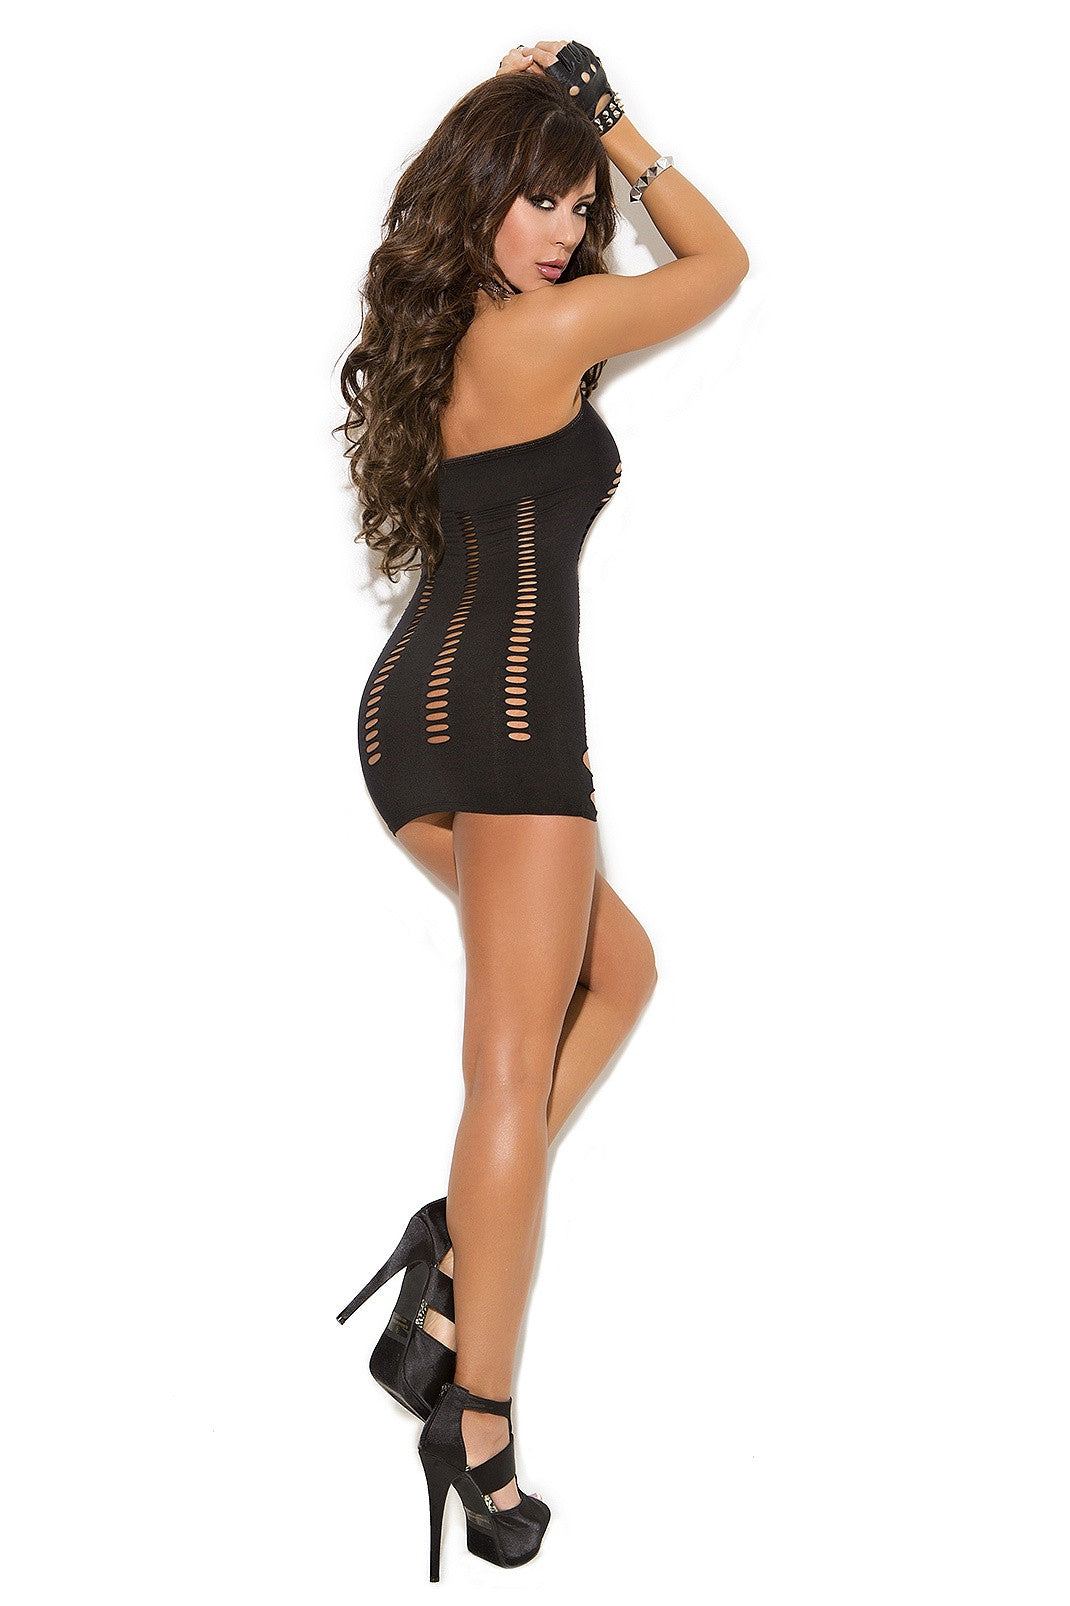 EM-8909 Mini dress - Sexylingerieland  - 2